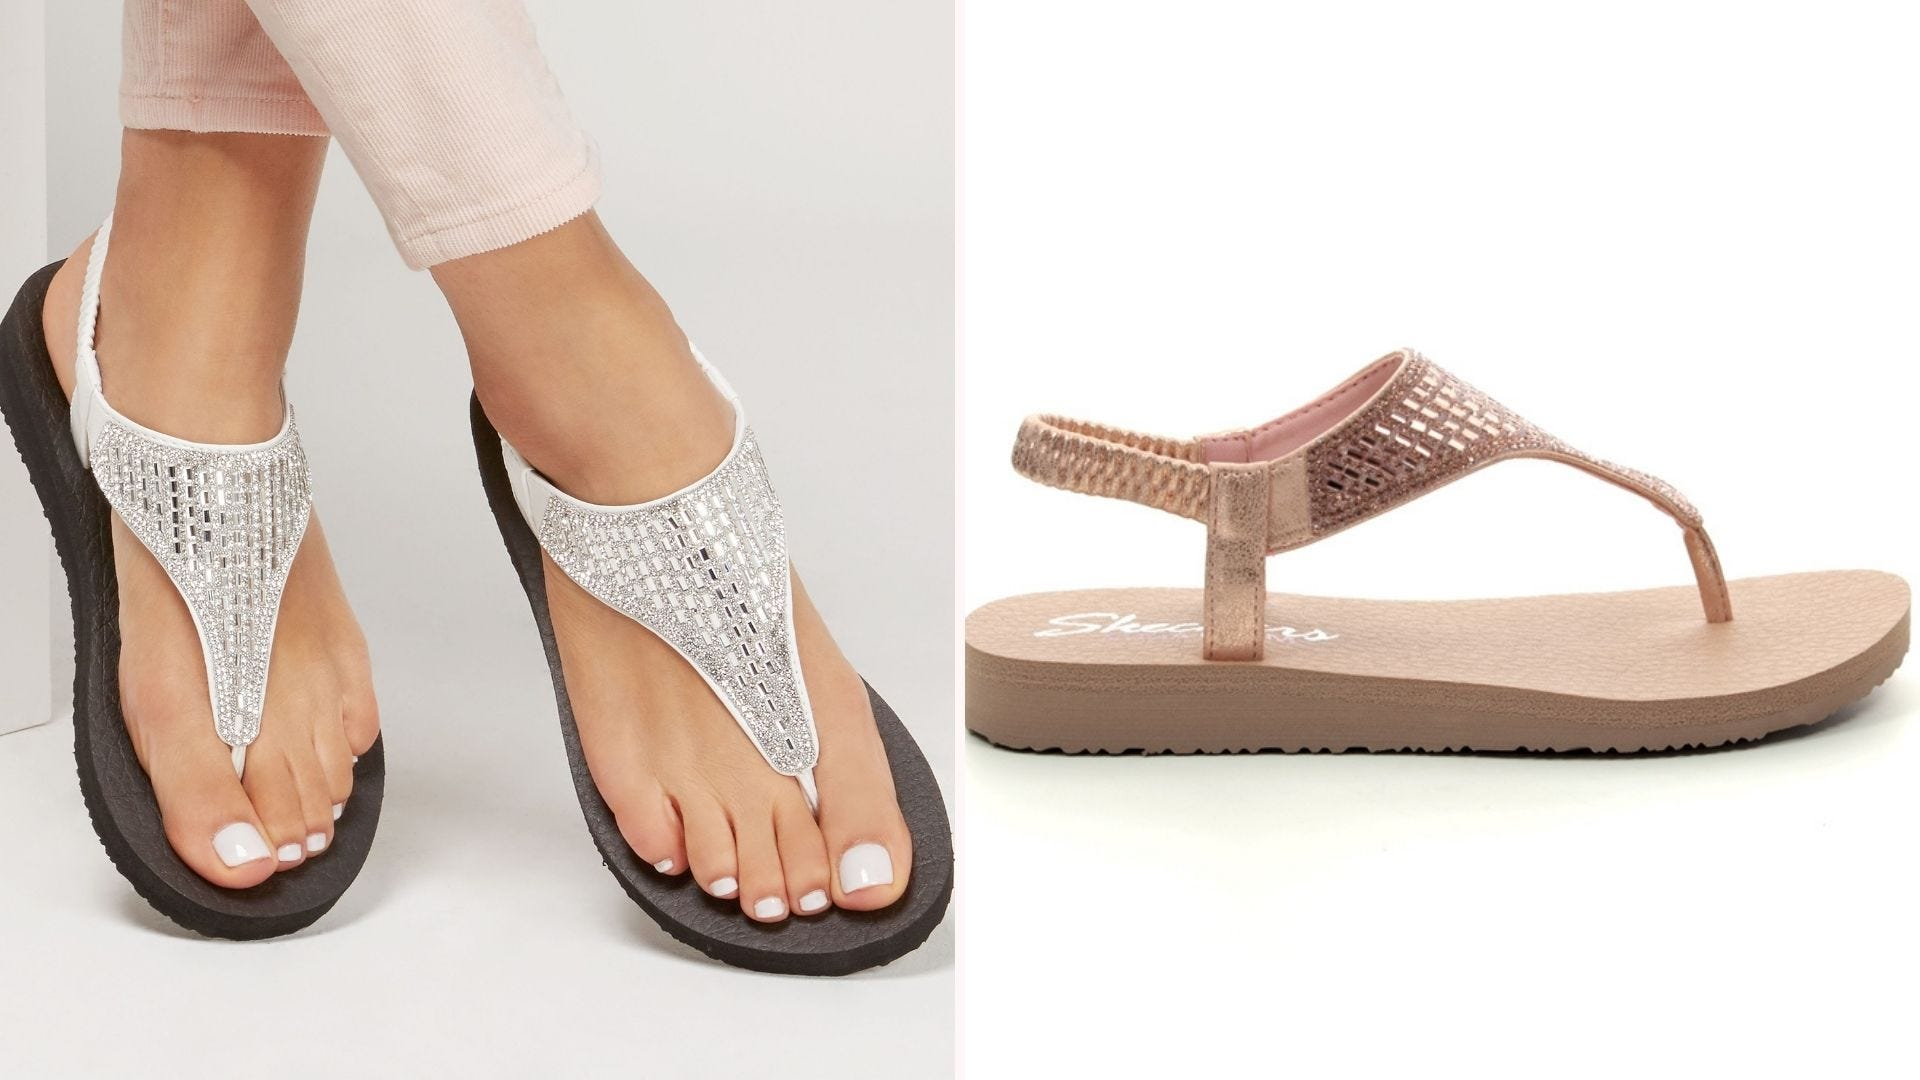 A woman wearing silver sandals; a rose-gold sandal seen from the side